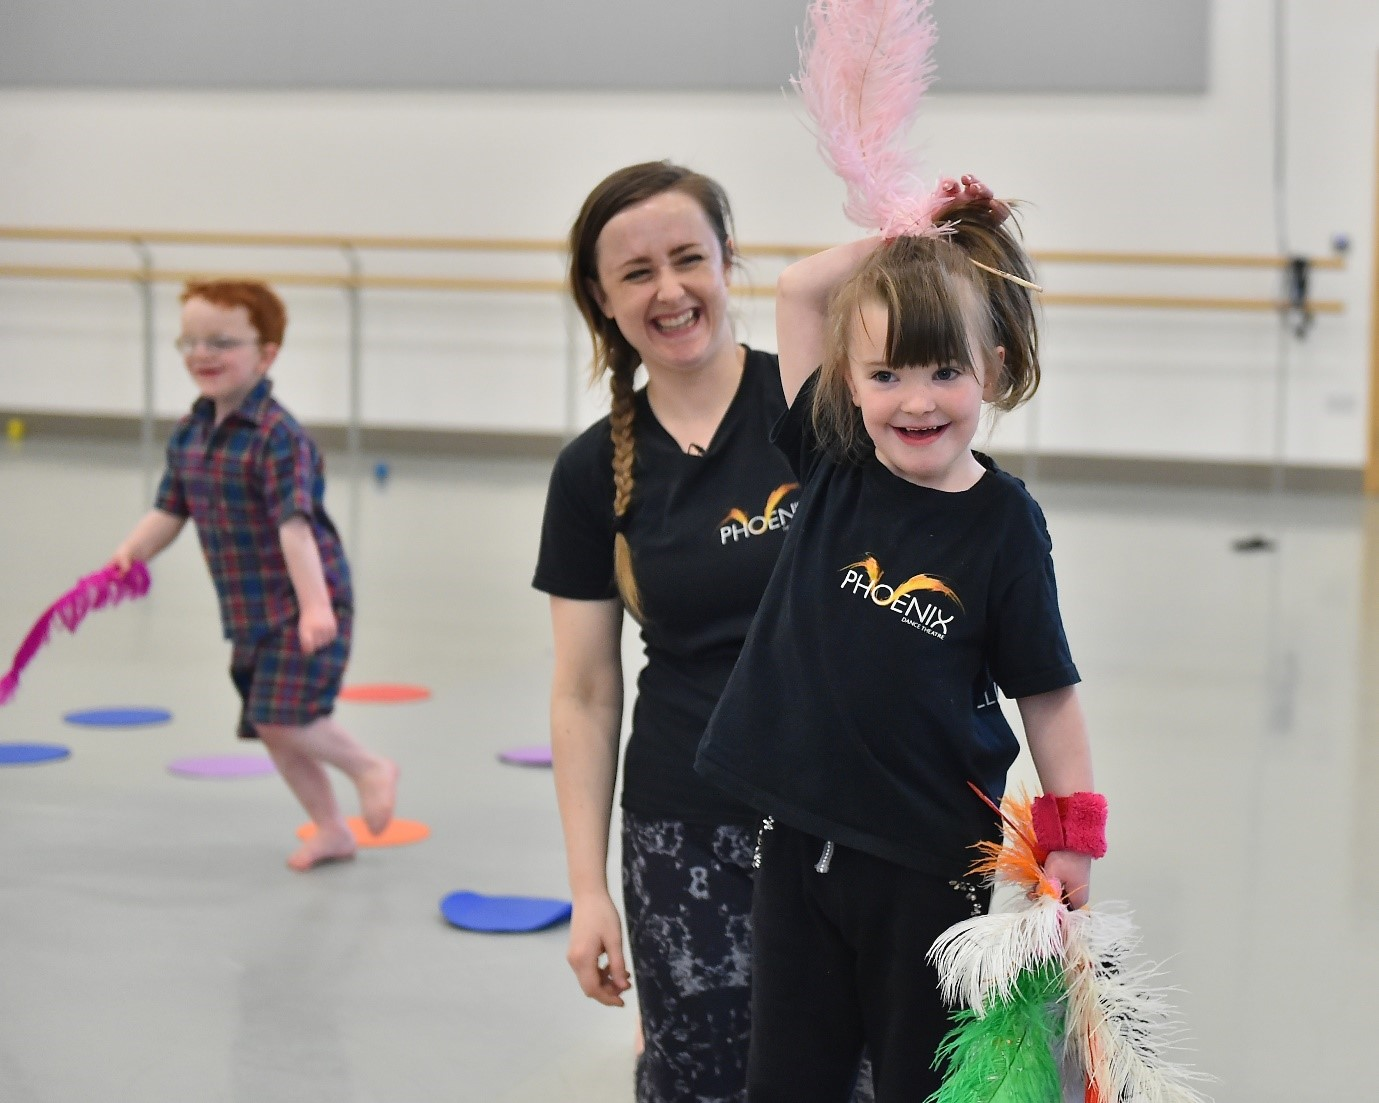 One of my favourite parts of the week, Illuminate Dance, runs on Saturday afternoons as targeted provision for young people with additional needs aged 6-18yrs. I'm responsible for managing the programme in terms of staffing, communicating with parents/carers and funders, all of our monitoring/evaluation work and generally ensuring the classes run smoothly. Some weeks, I'm able to come in and support the sessions as part of the delivery team – I'm very lucky to have this as part of my job!